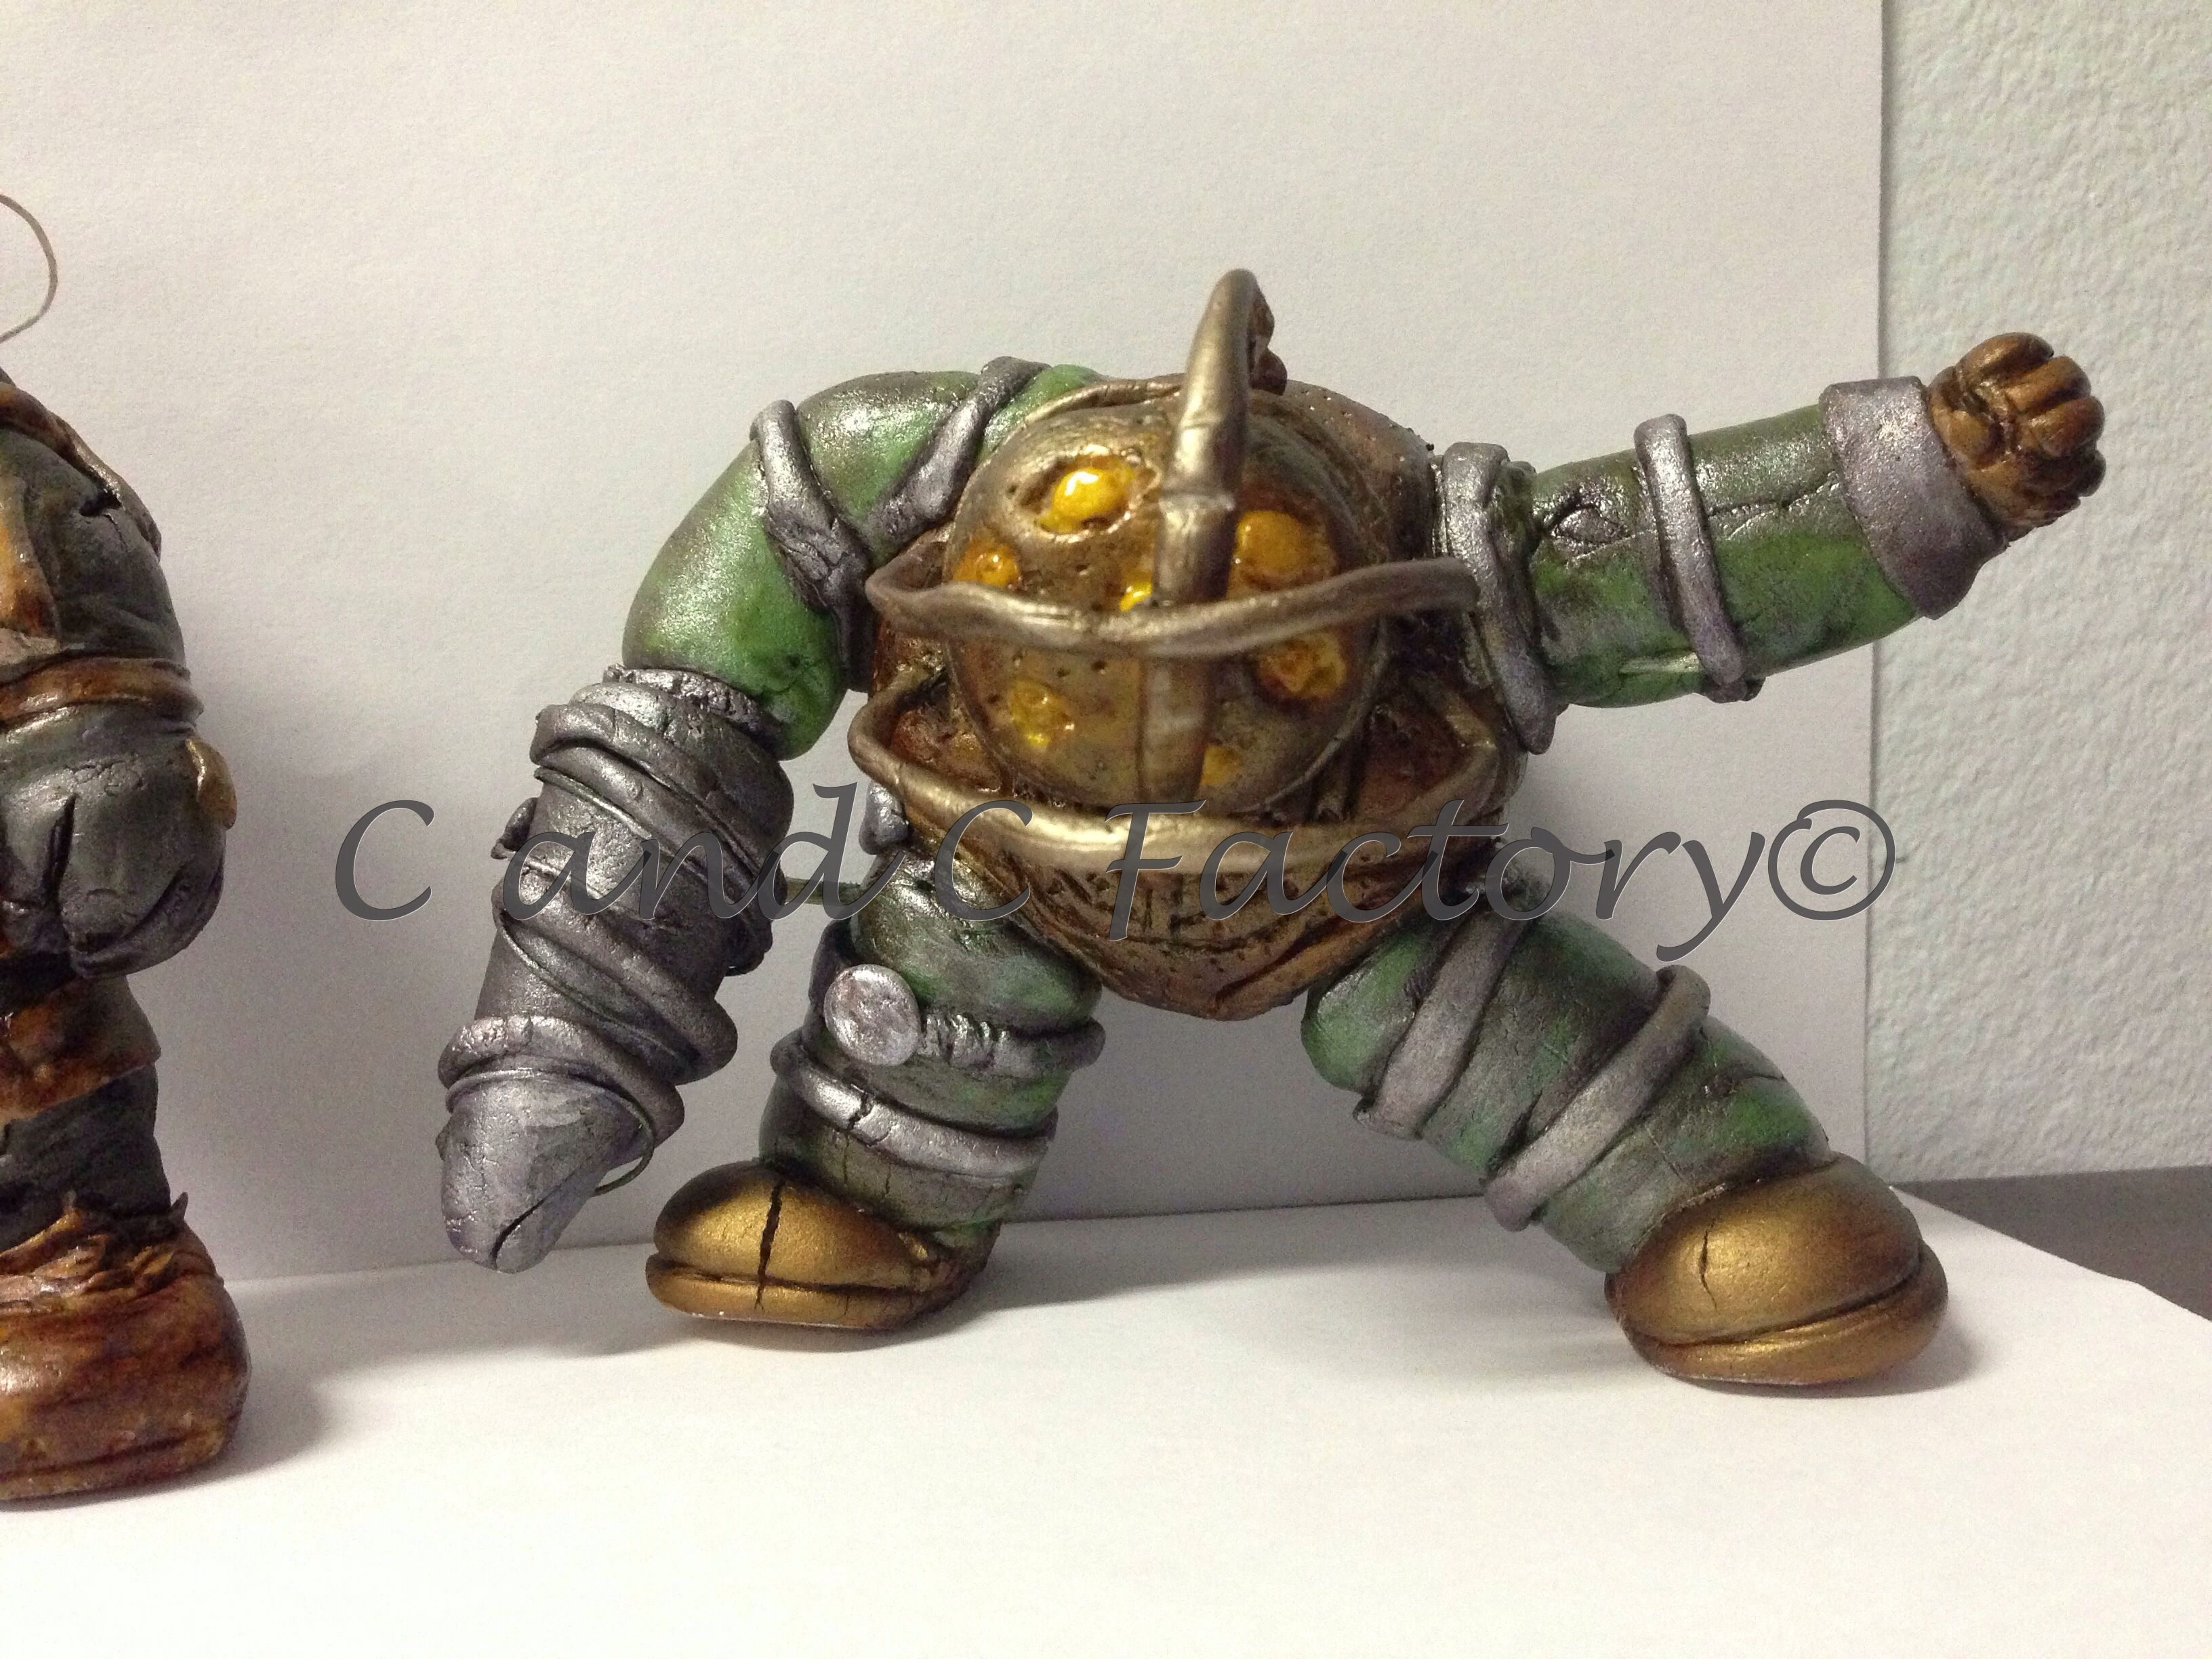 Fondant Bioshock Big Daddy by C and C Factory Available to order in our Etsy Shop https://www.etsy.com/shop/CandCFactory